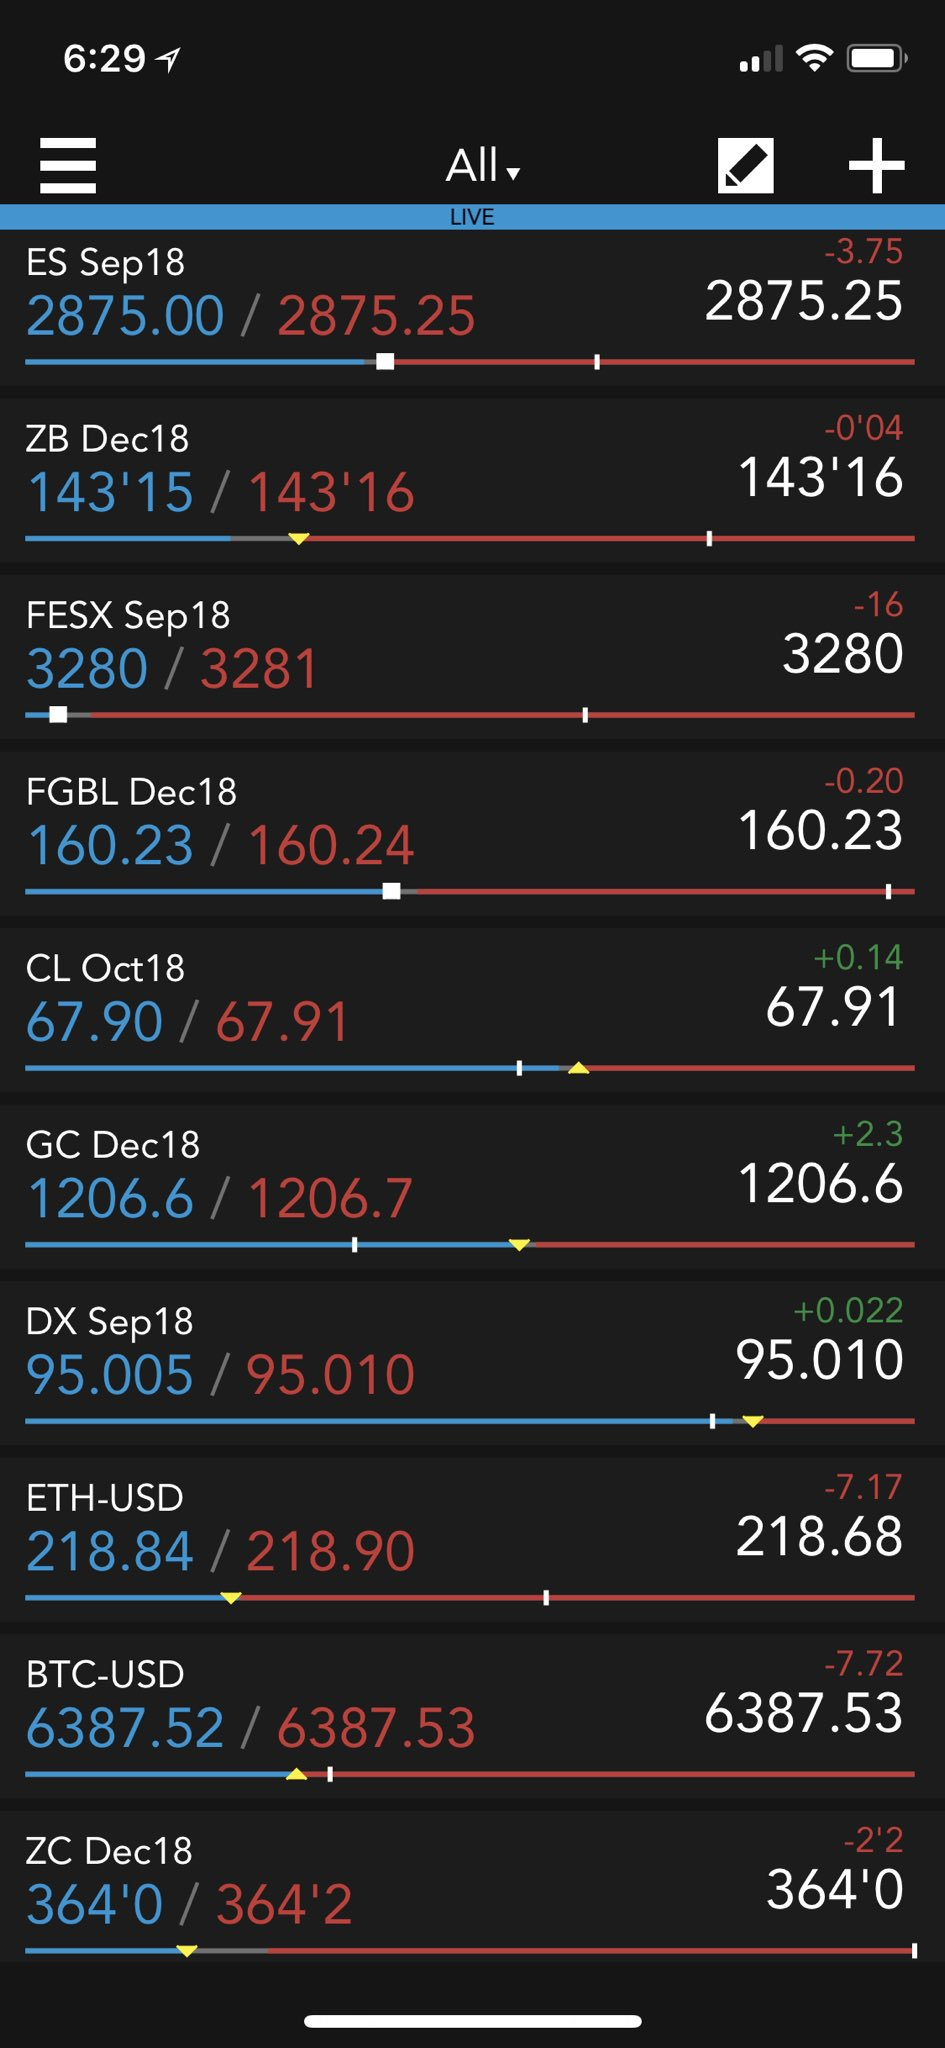 Market view on #TTMobile: #ES_F, #FESX, #HangSeng, #ZB_F and #bunds are lower. #Crude, #gold, #tin and #DX_F are higher. #Carbon futures are up. #Corn is down. #Bitcoin and #ethereum are lower. https://t.co/W3PvpcL3wK